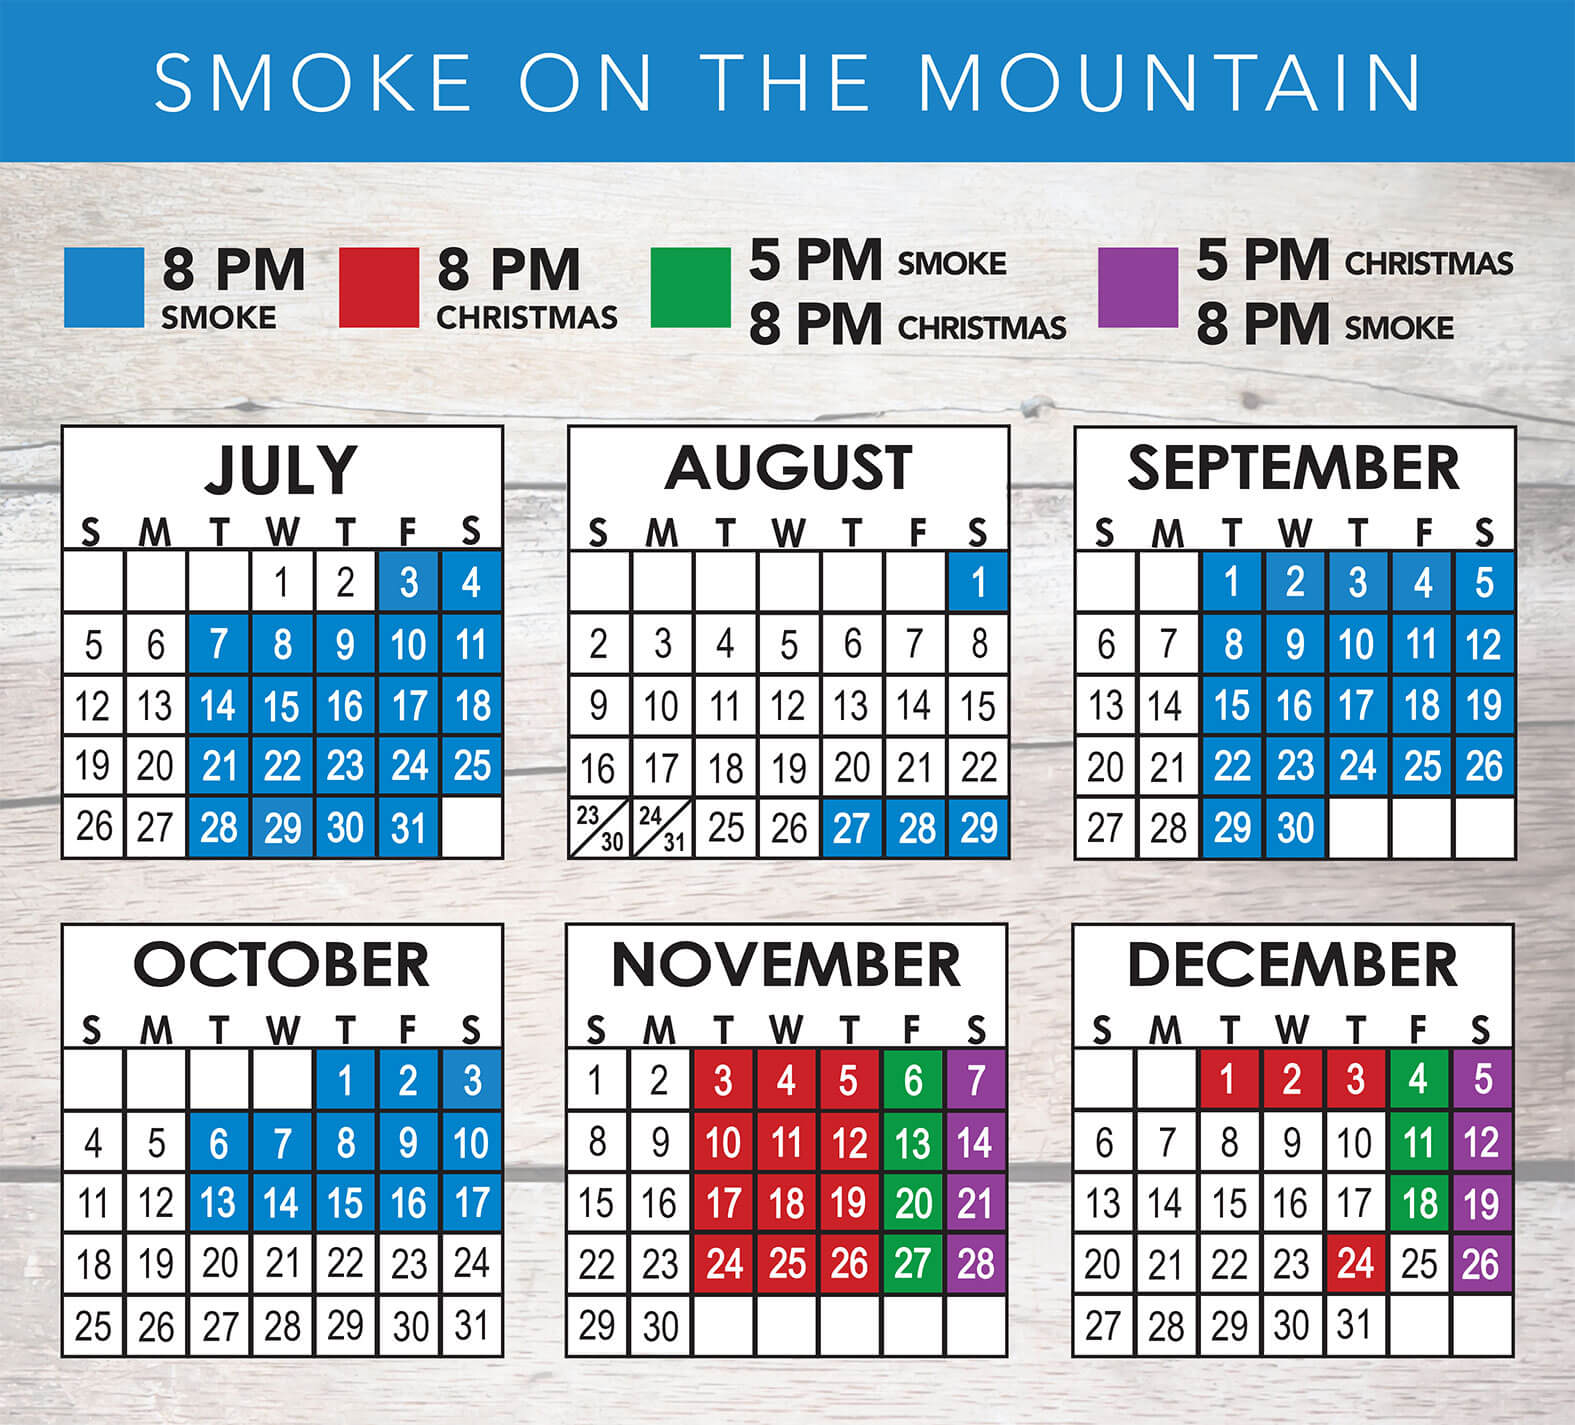 Smoke on the Mountain 2020 Schedule